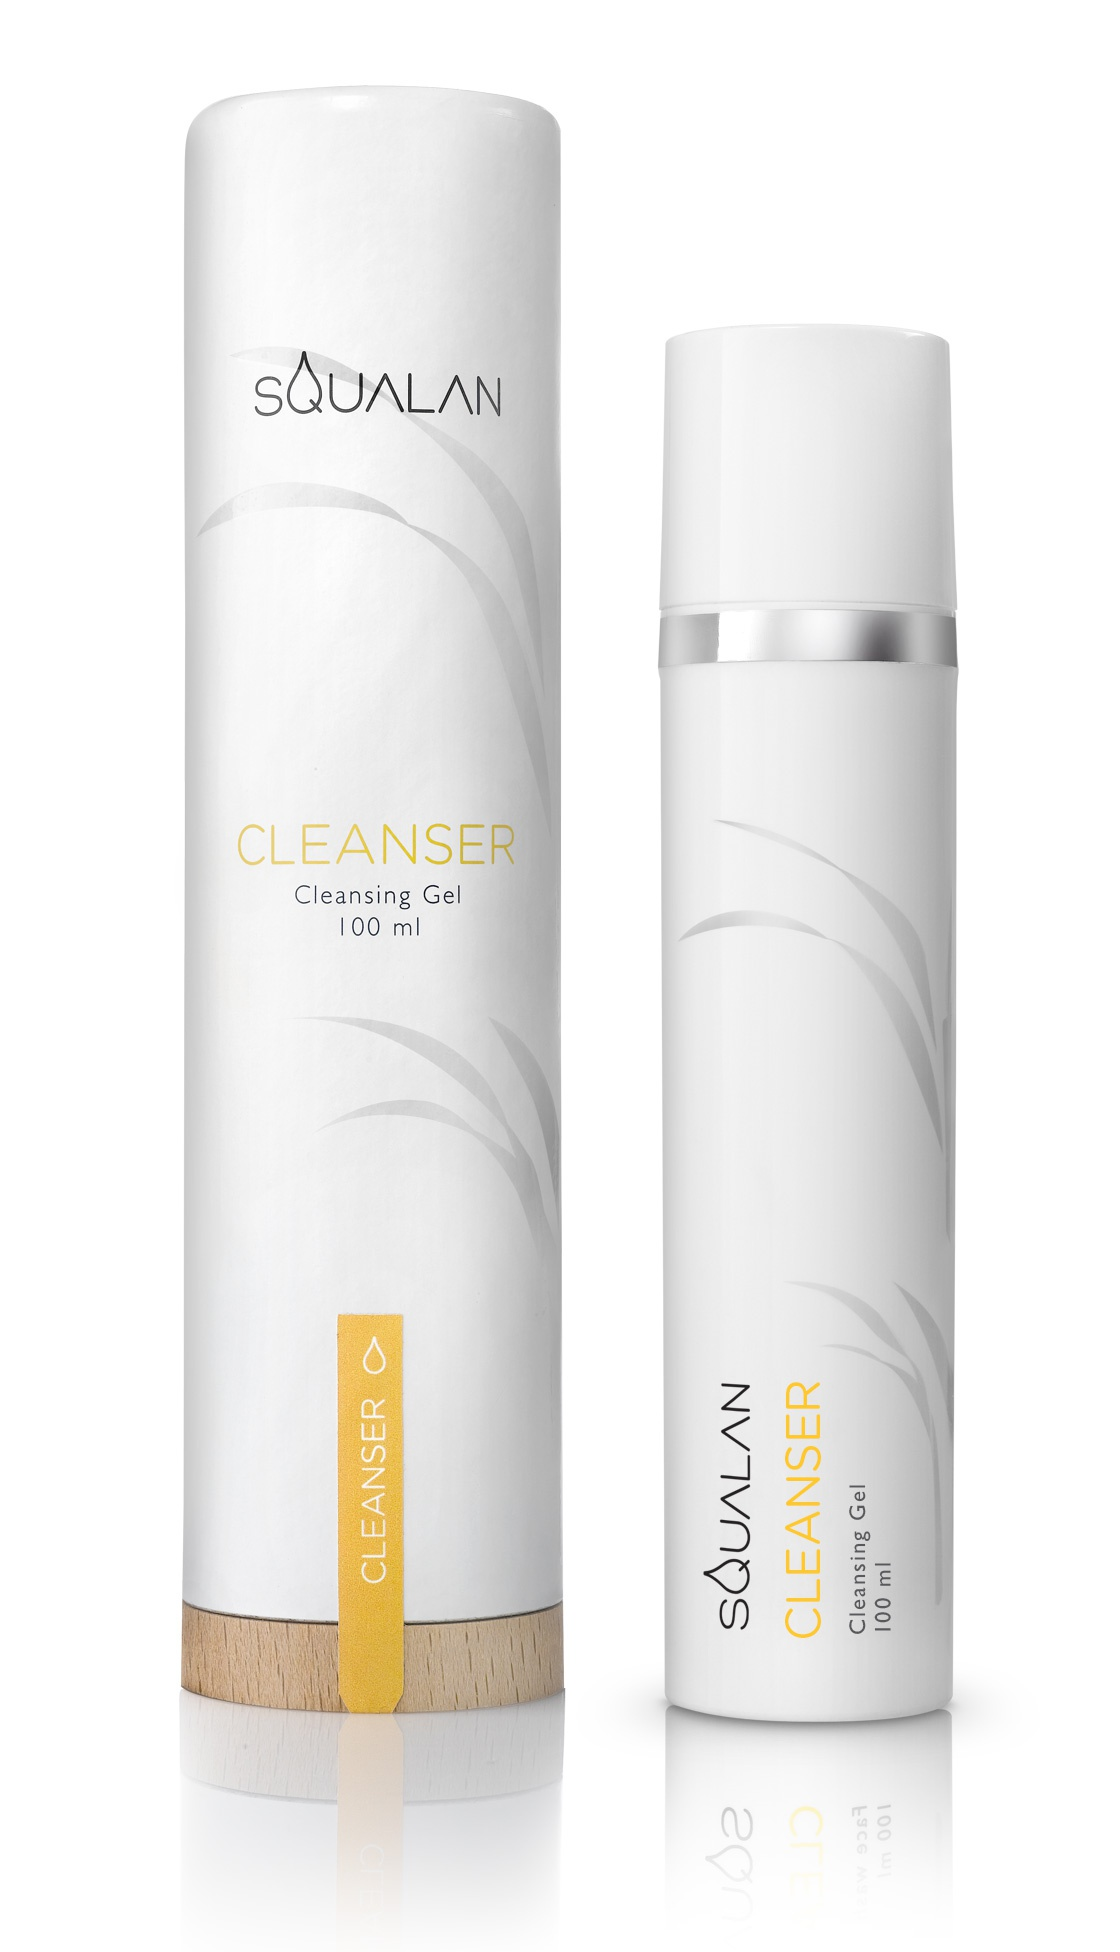 Squalan Cleanser Cleansing Gel